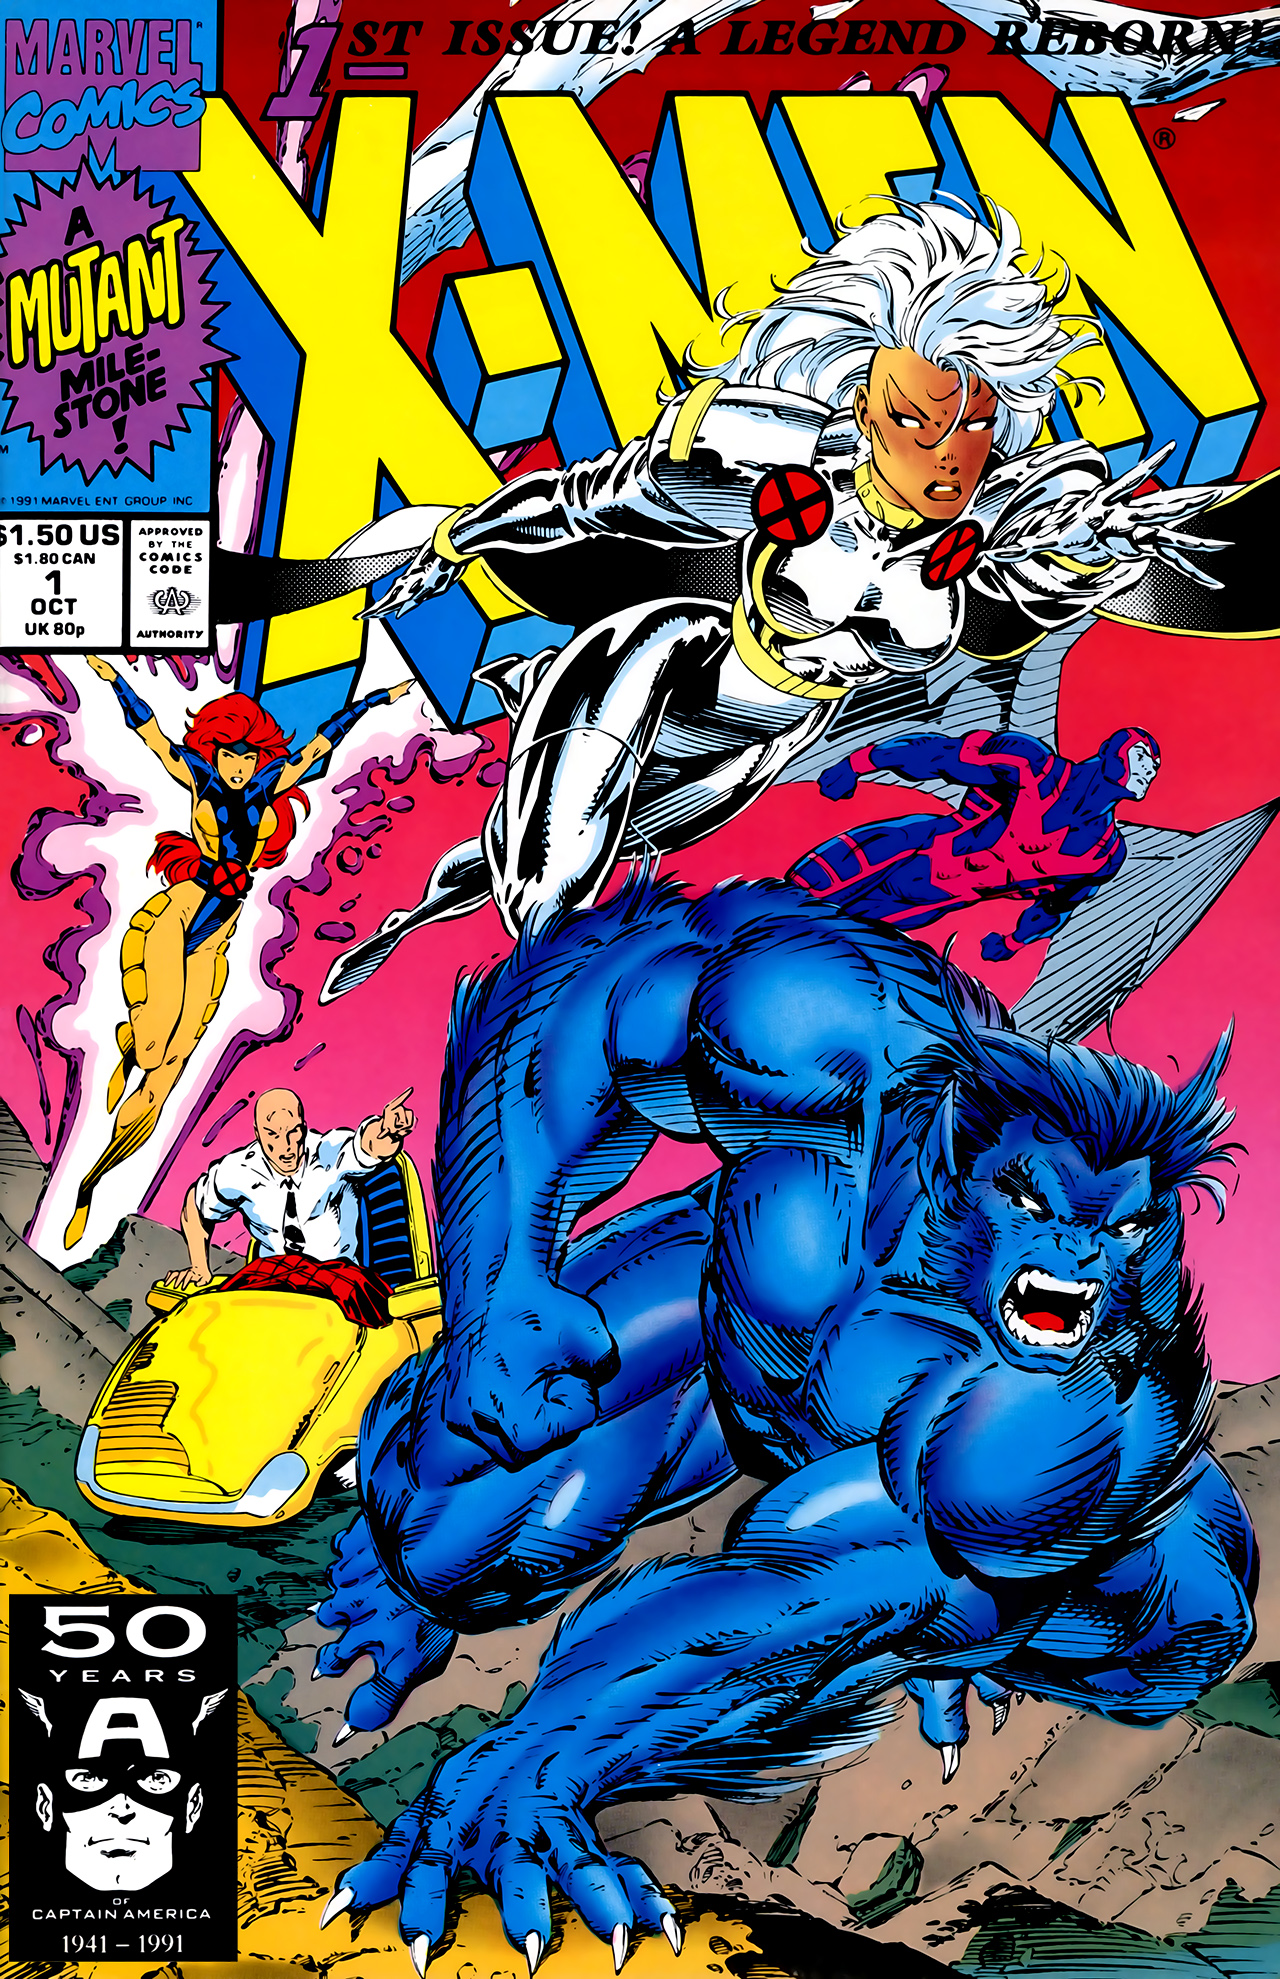 Book Cover Art Database : X men vol marvel comics database